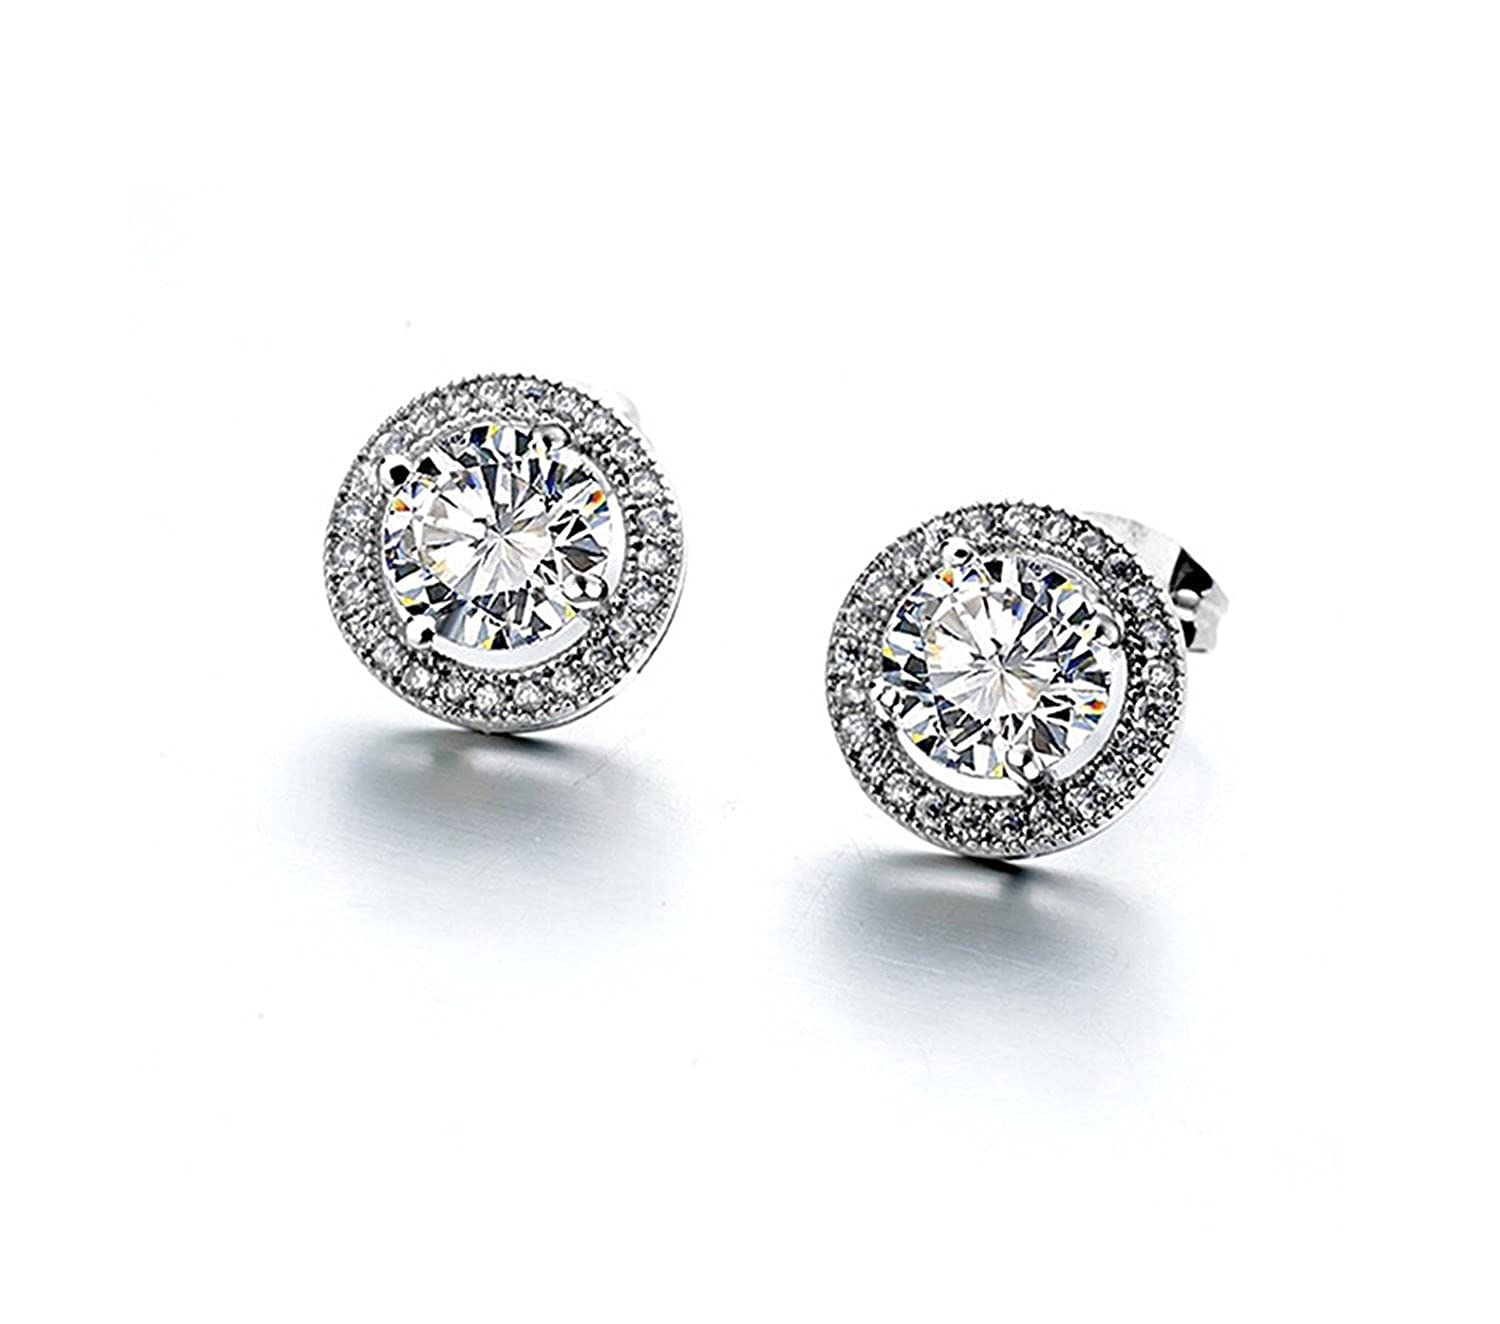 Dame GS White Gold Plated 2.00 Carat Ornate Round Cut 7mm AAA Cubic Zirconia Simple Stud Earrings Fashion Jewelry